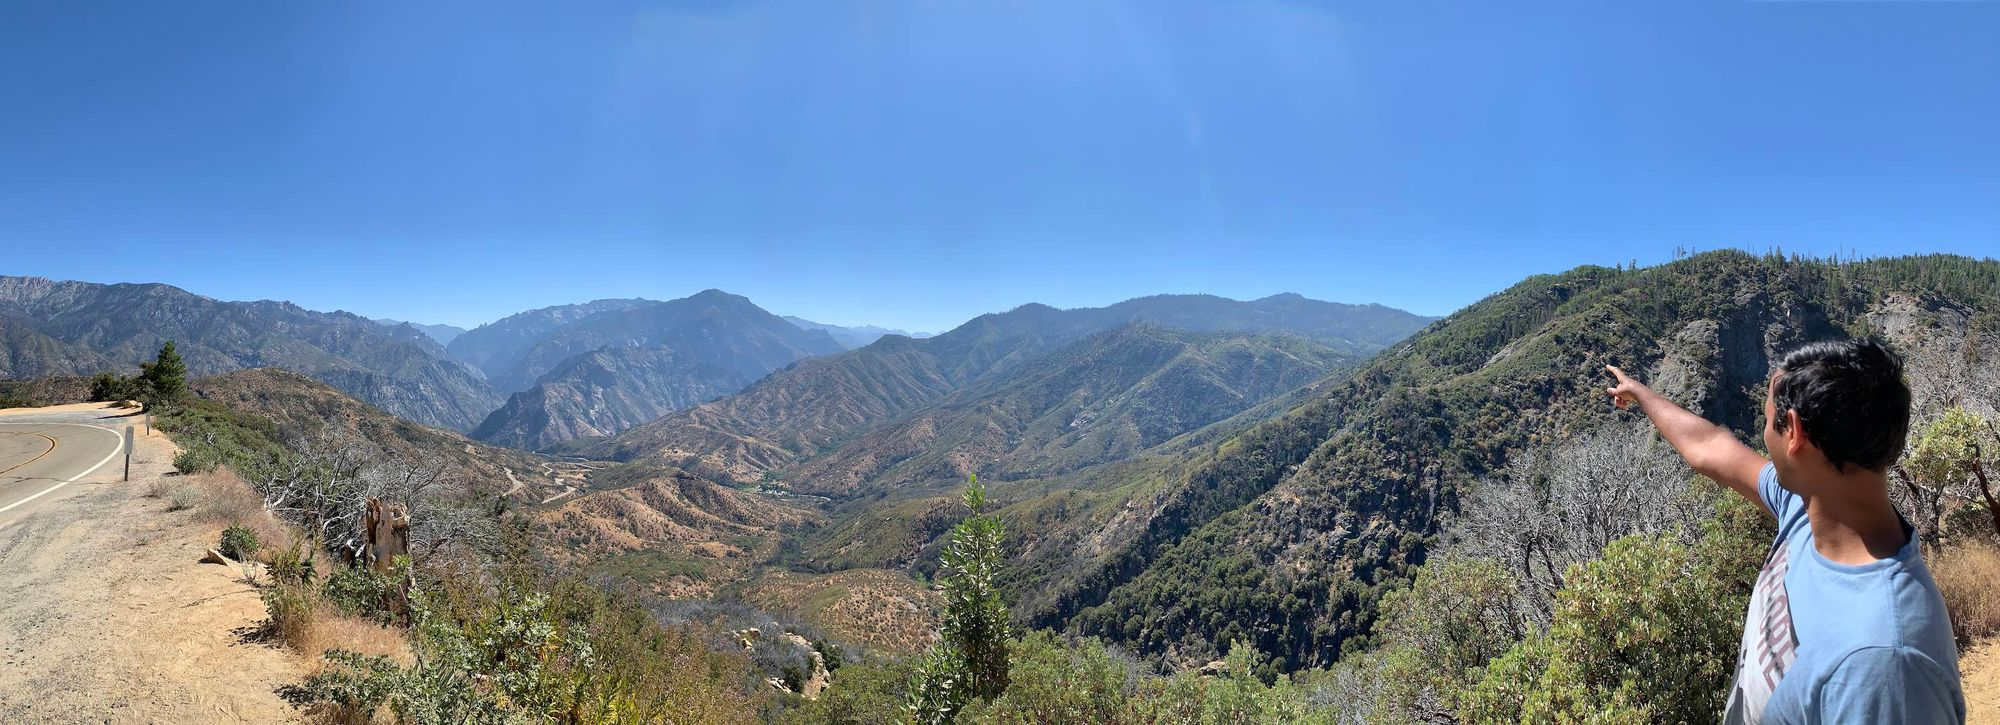 Sequoia and Kings Canyon National Park - Part 2